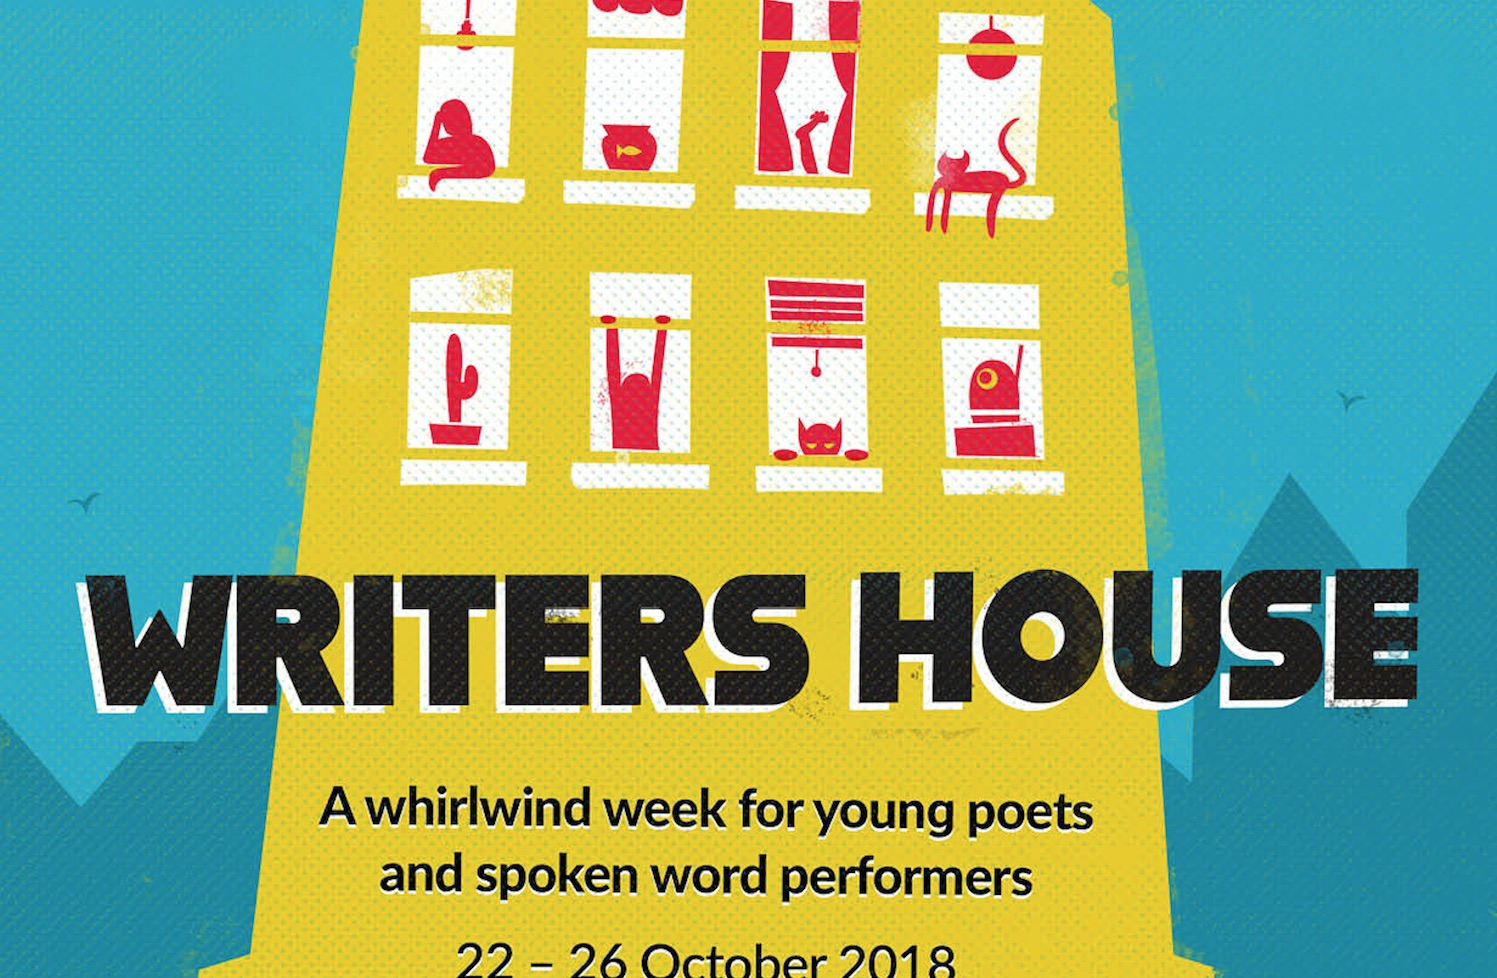 Peterborough Writers House: Call Out For Applications